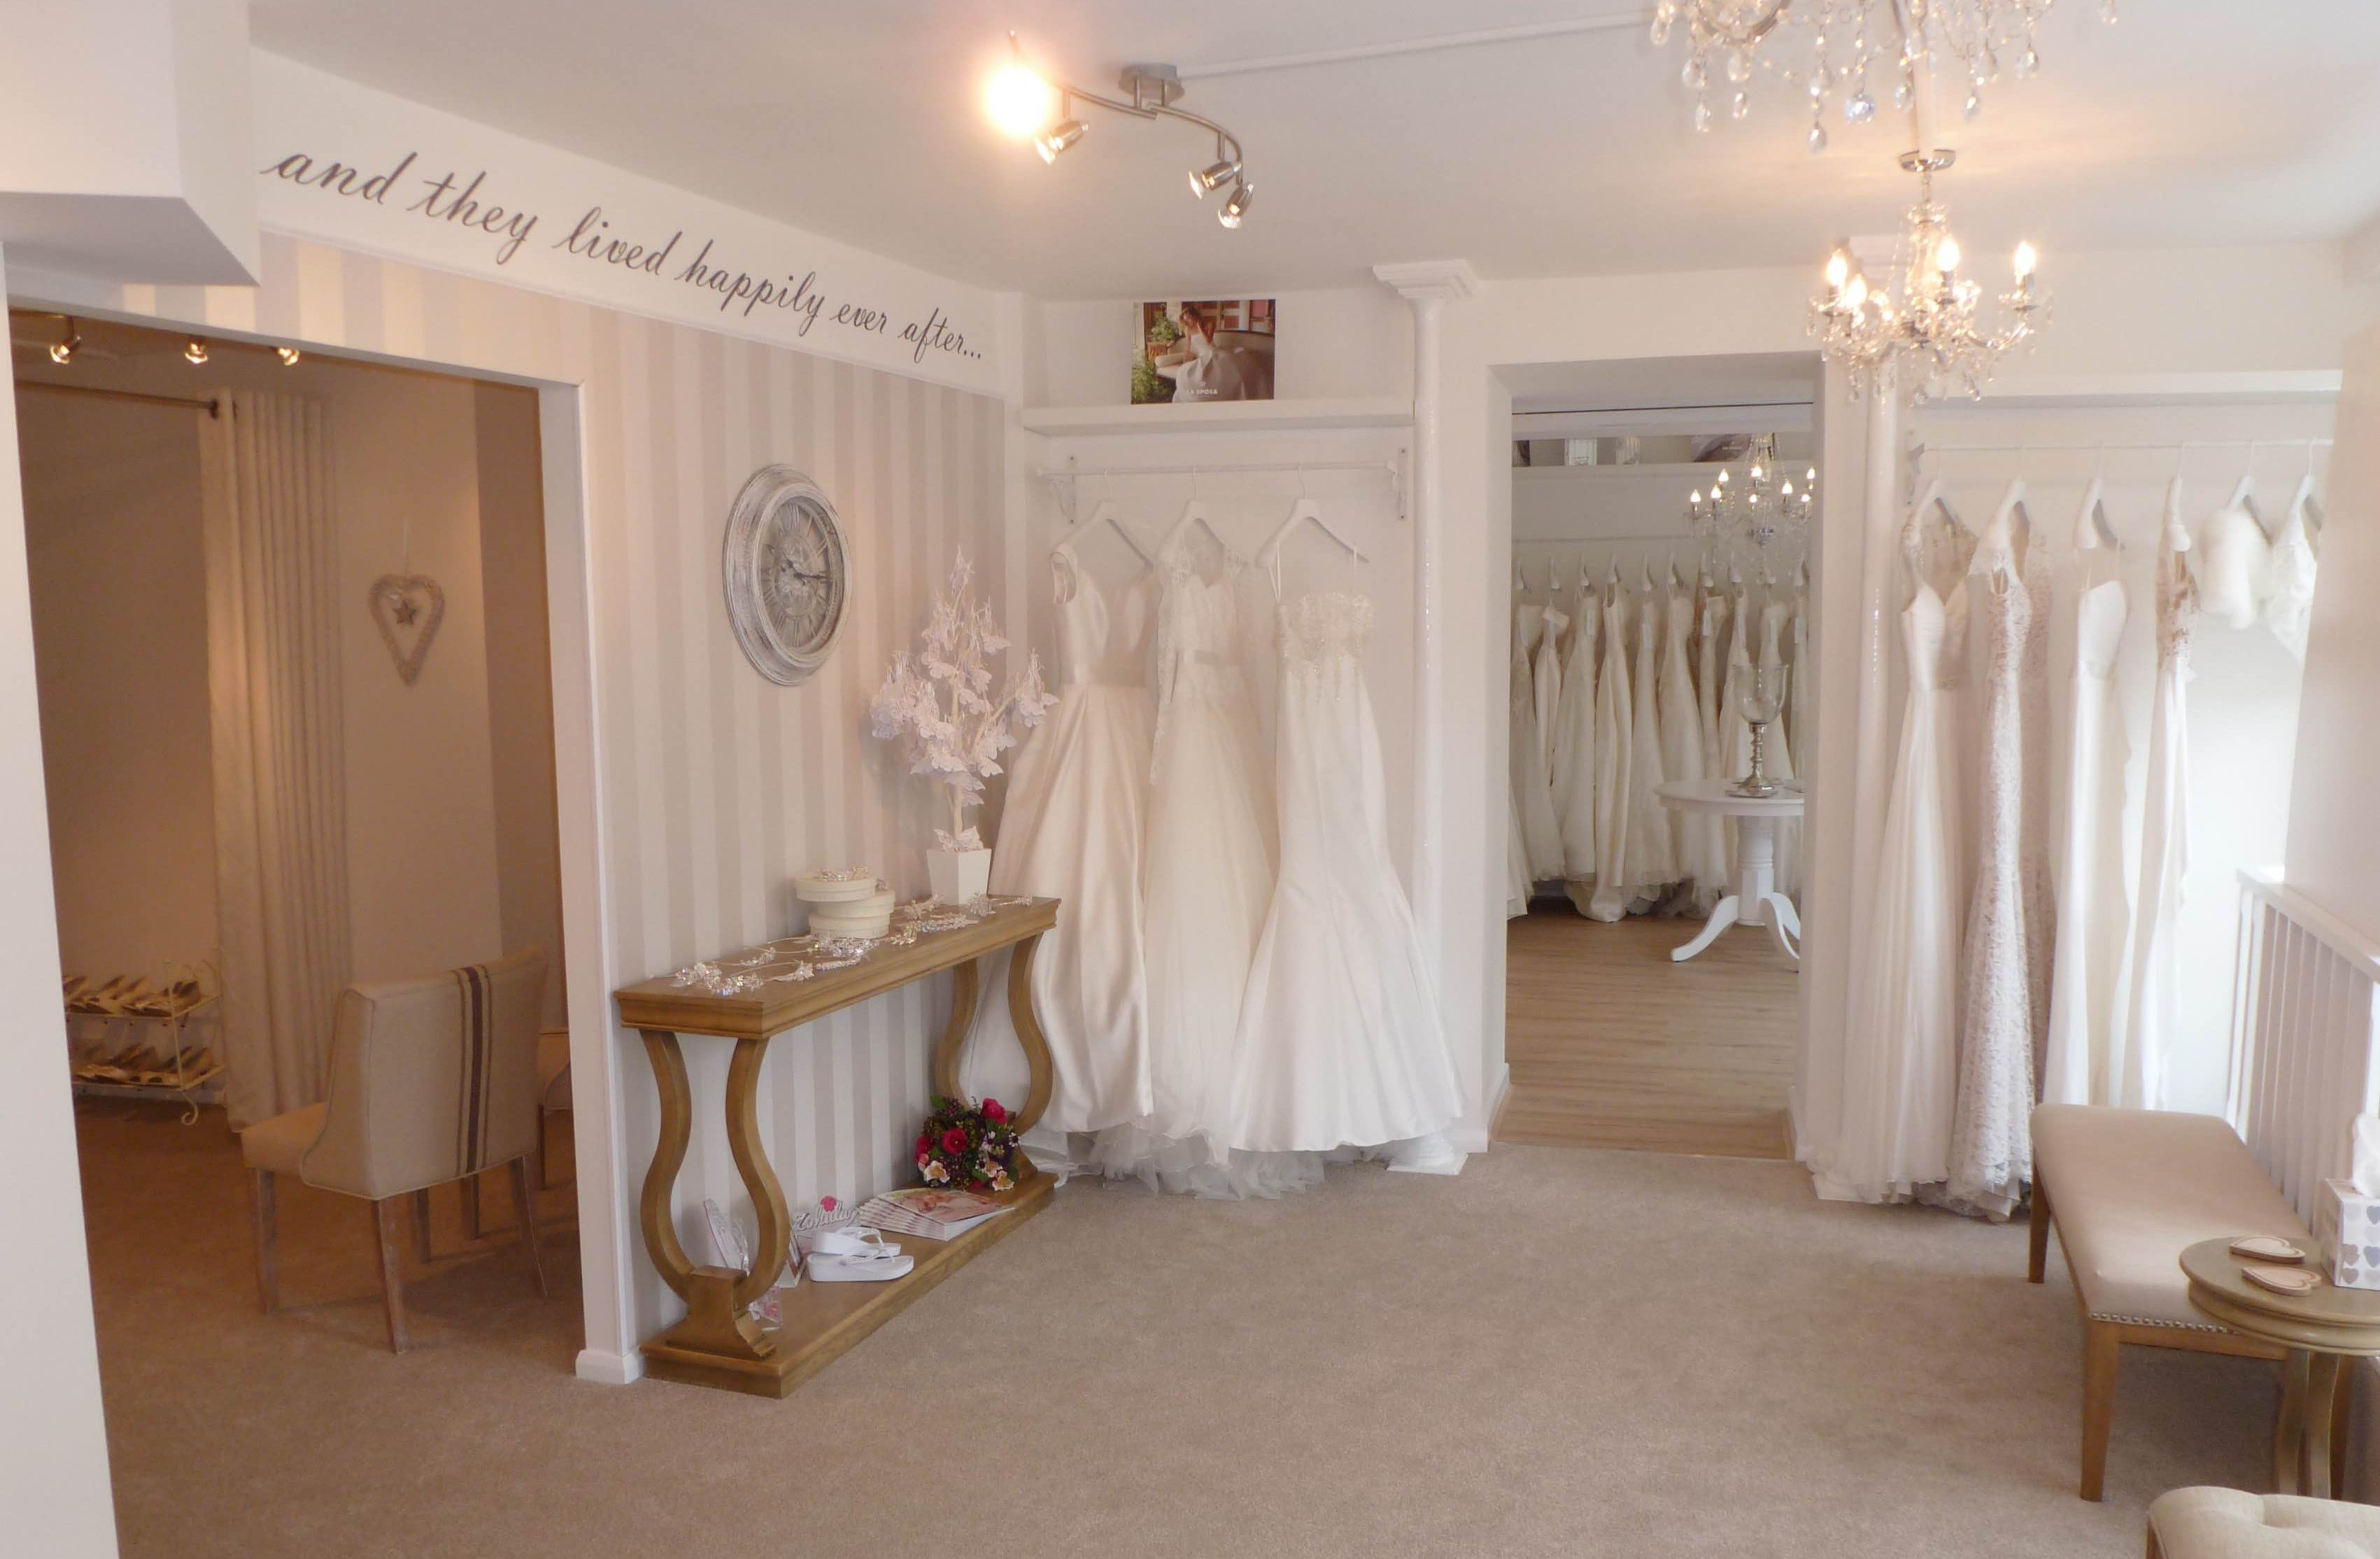 1a49fc3f95c Your bridal accessories can really add the perfect finishing touch to your  look. We spoke to the lovely Nicola from George James Bridal to get her top  tips ...